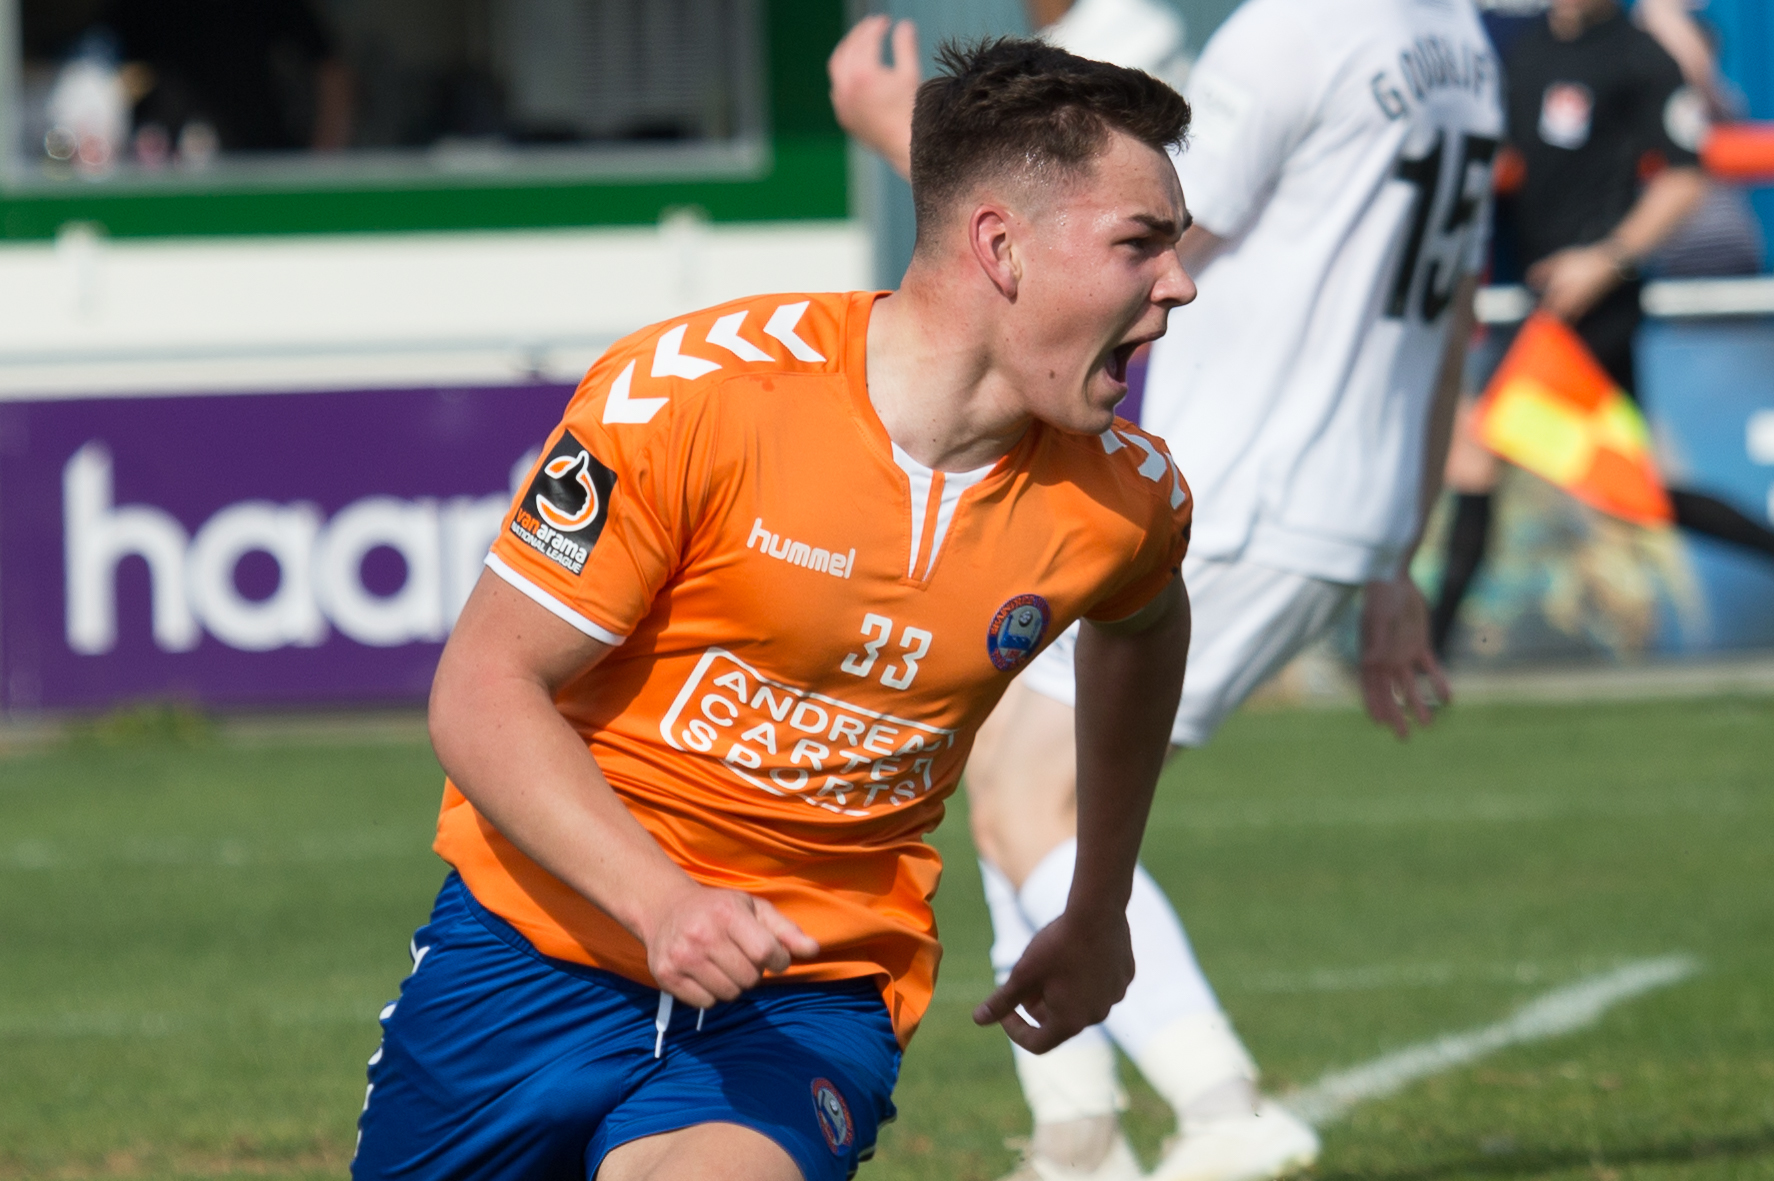 Afie Cerulli celebrates scoring Braintree's opening goal in a 2-0 win against Dagenham & Redbridge that set them up for a trip to the National League leaders on Saturday. Picture: Chris Jarvis